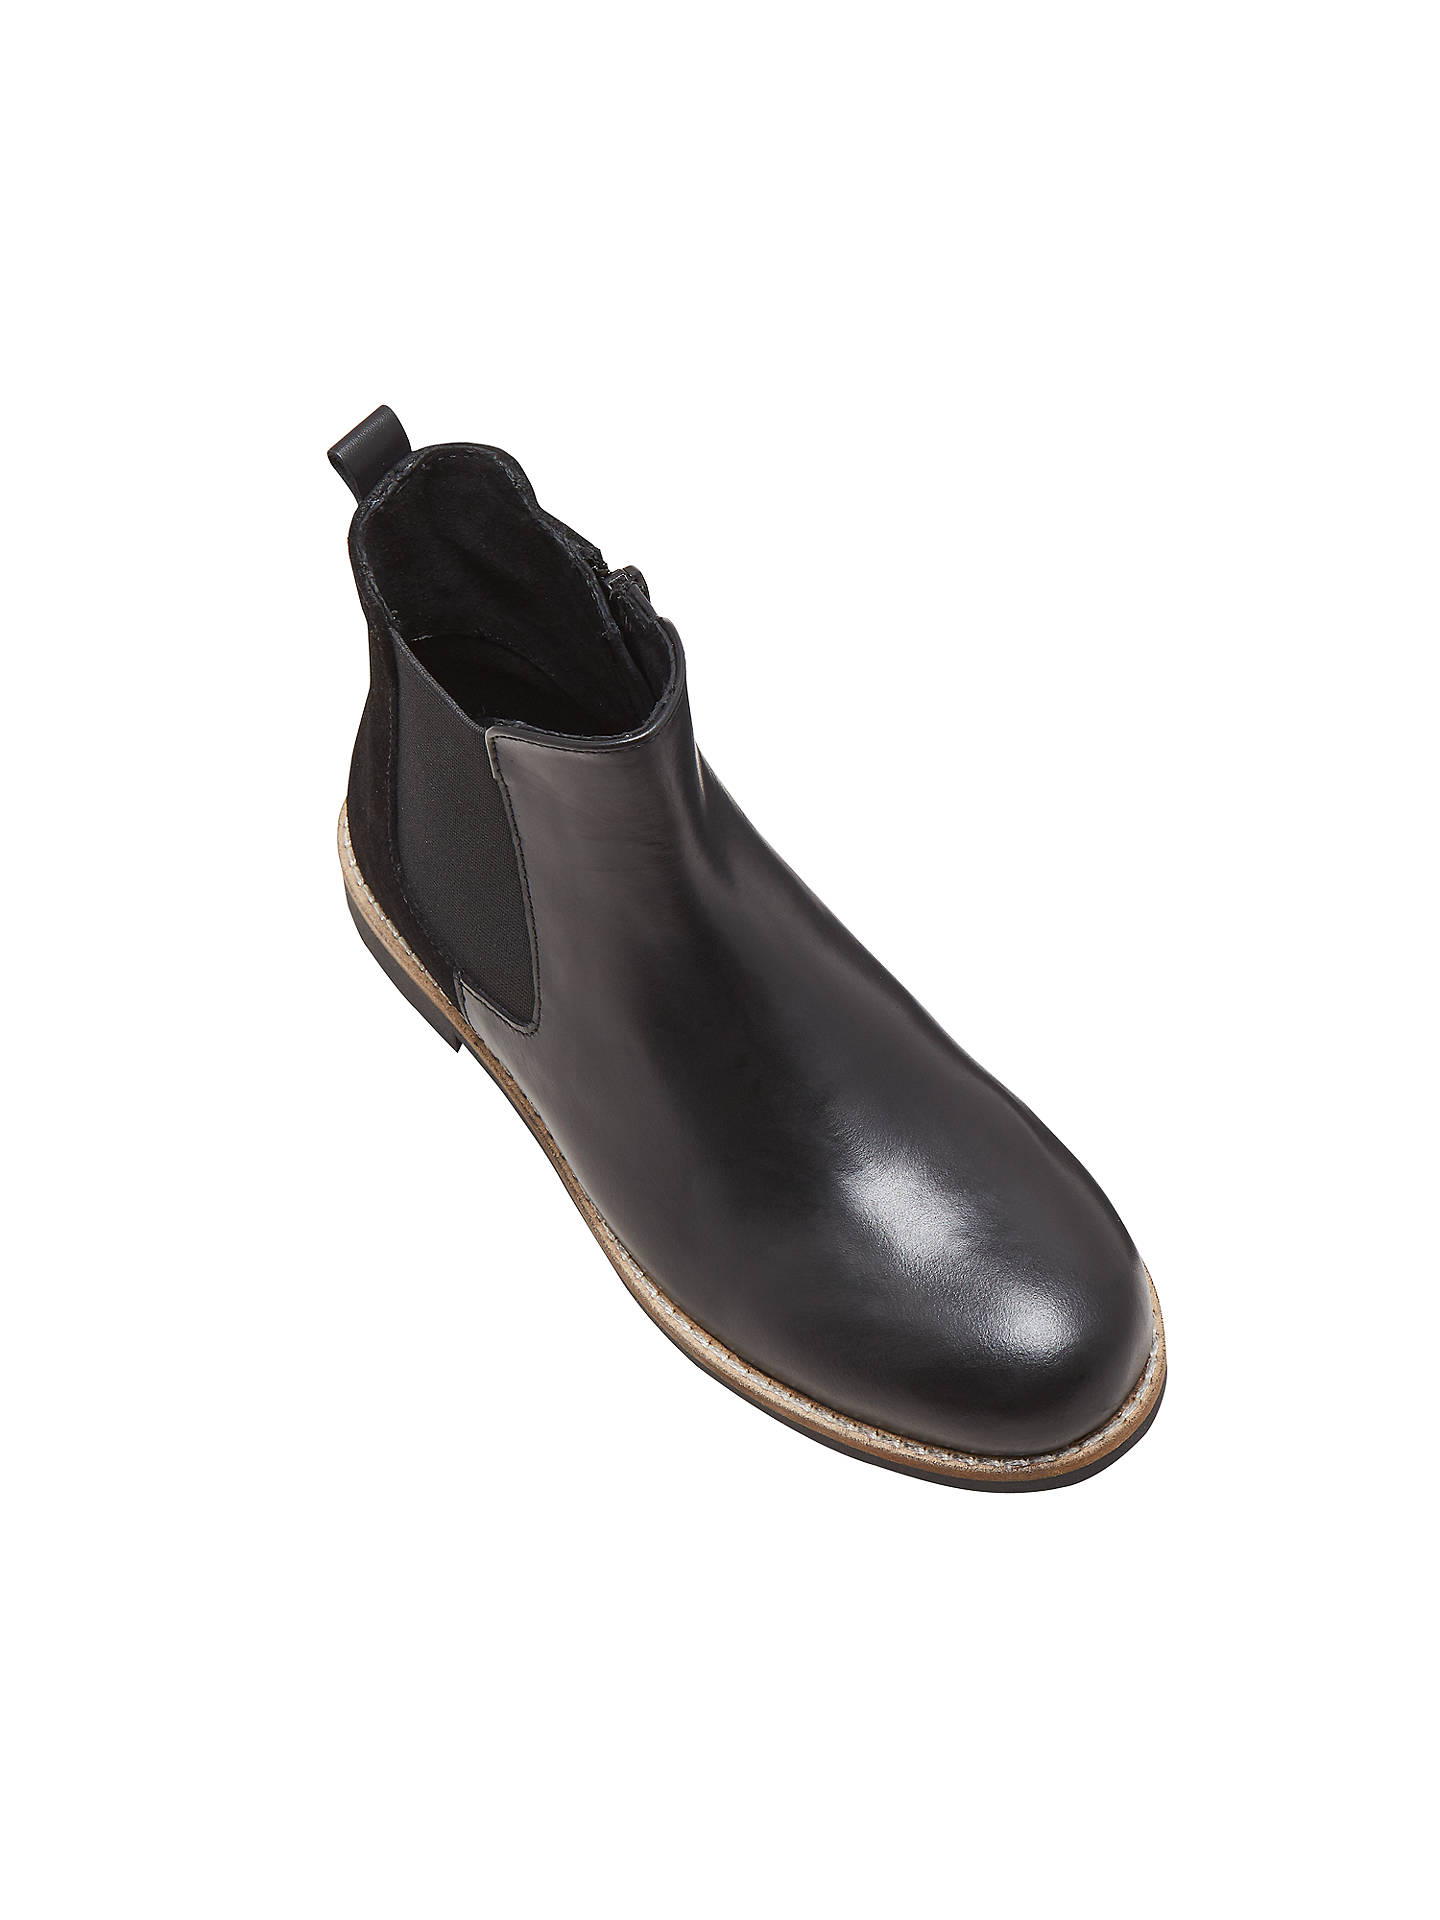 Buy John Lewis & Partners Children's Hannah Chelsea Boots, Black, 10 Jnr Online at johnlewis.com